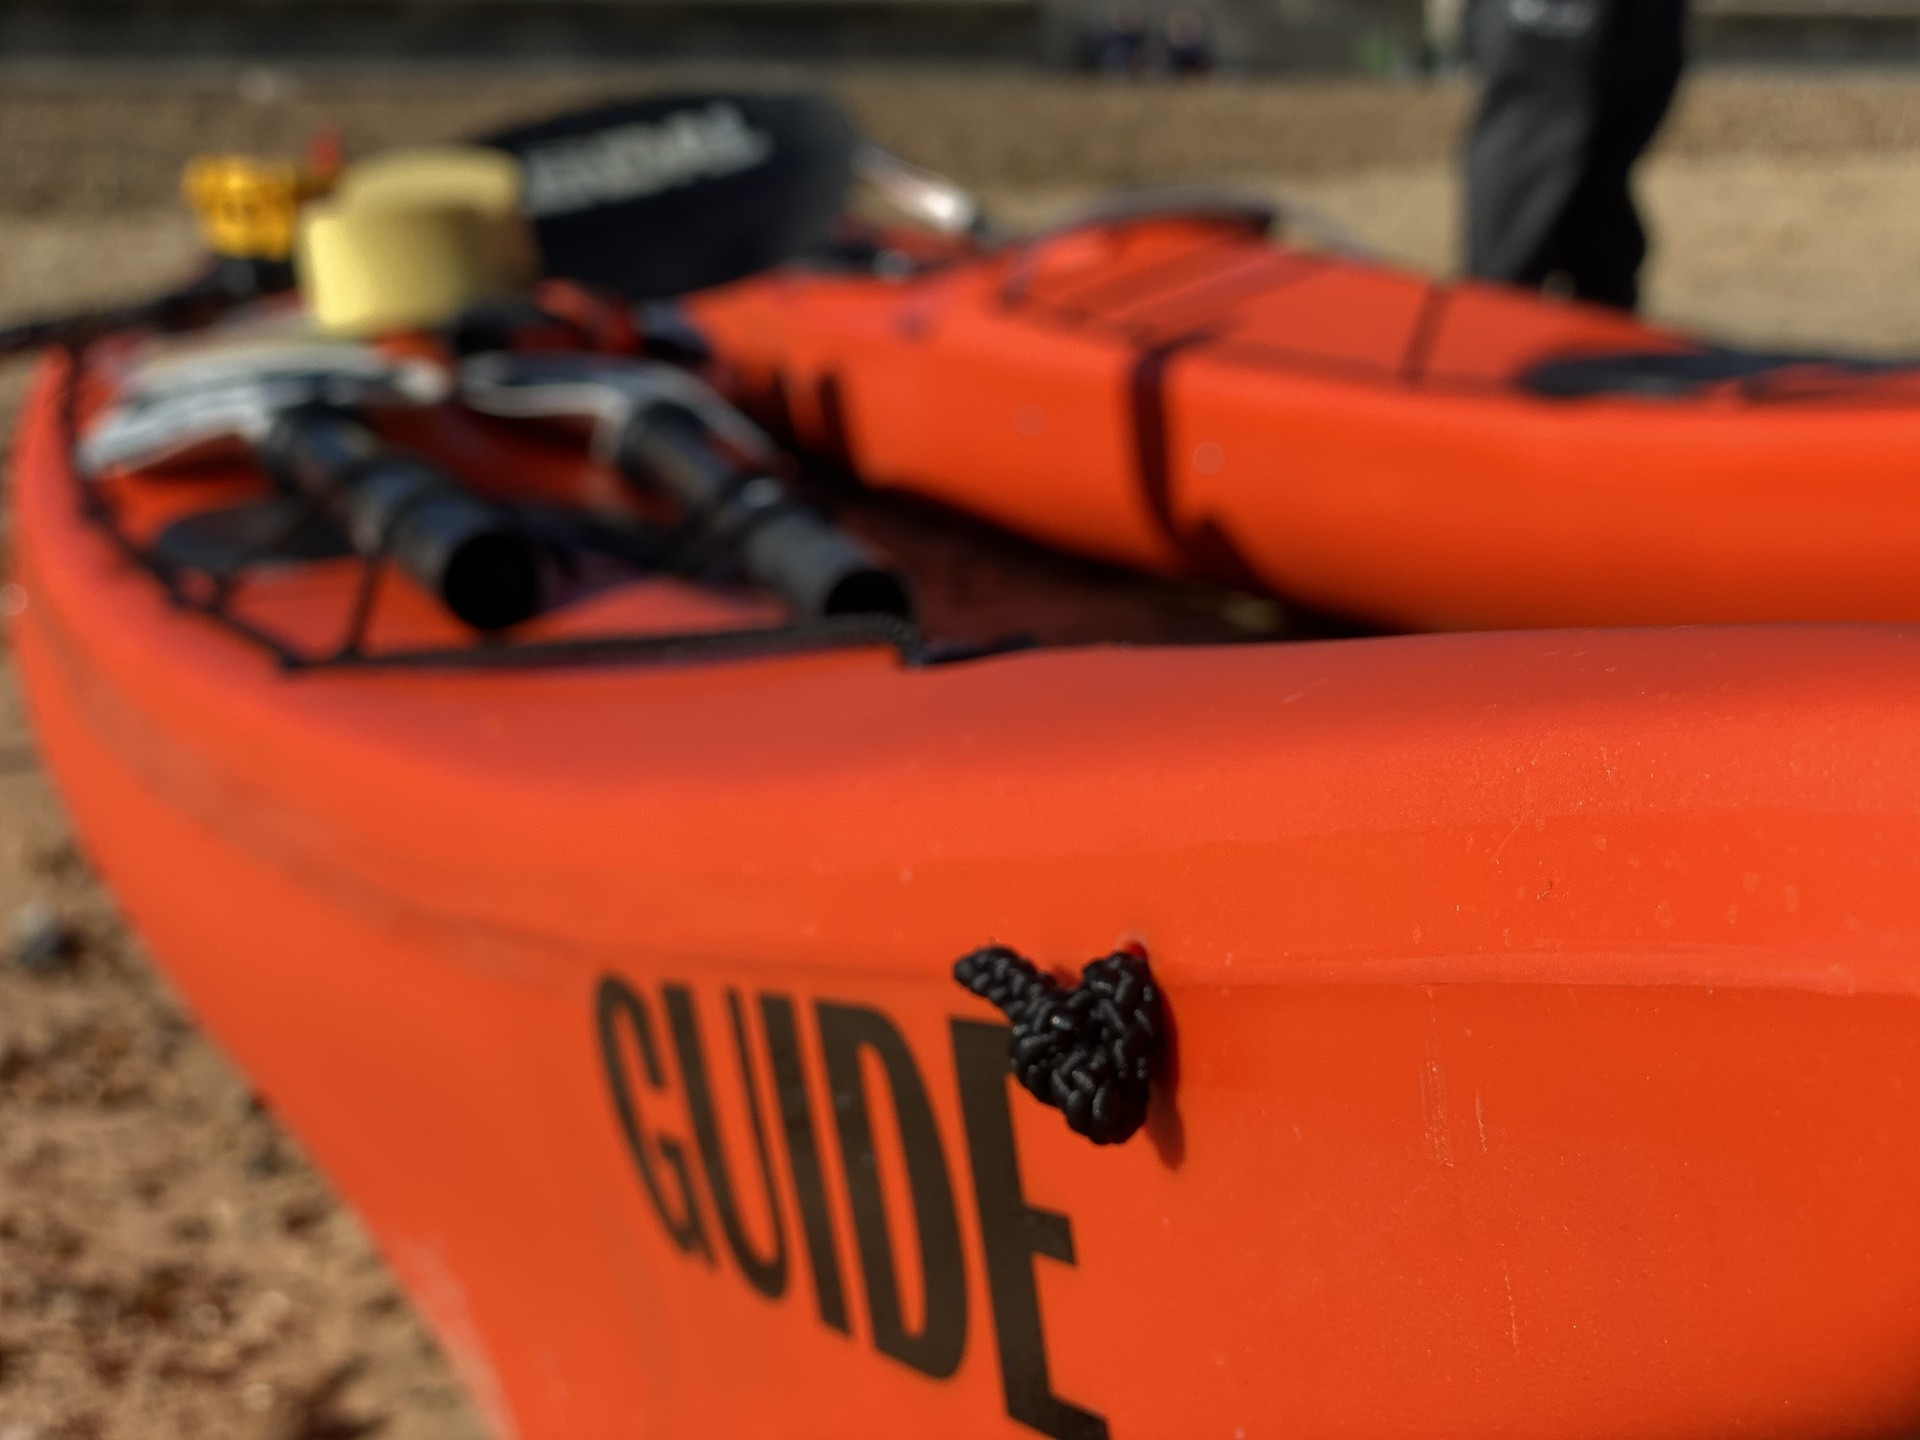 A sea kayak clearly showing the word 'Guide' on the bow.